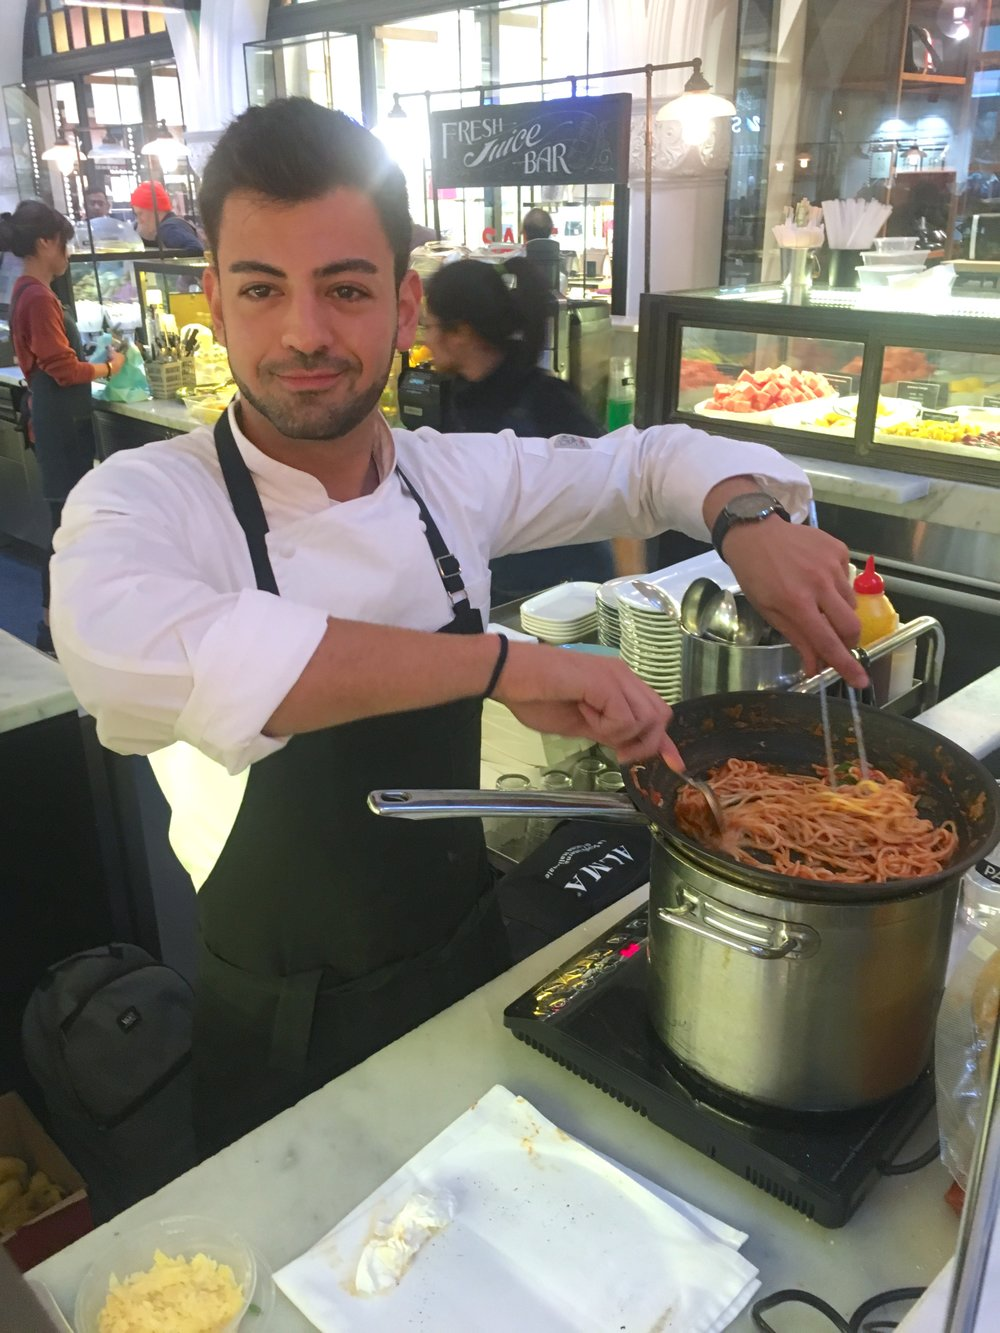 On Saturday of last week, we launched our new homemade pasta sauce, made from vine ripened oxheart tomatoes.    Our Parisi chef prepared samples of our freshly made pasta sauce accompanied by freshly made pasta. The dish was such a huge success that it has now been added to our Parisi menu at our QVB location.    The pasta sauce will now be sold through our wholesale business and available for purchase at our QVB and Sydney Fish Market stores.    Join us at our Barangaroo store tomorrow to sample this beautiful winter dish!